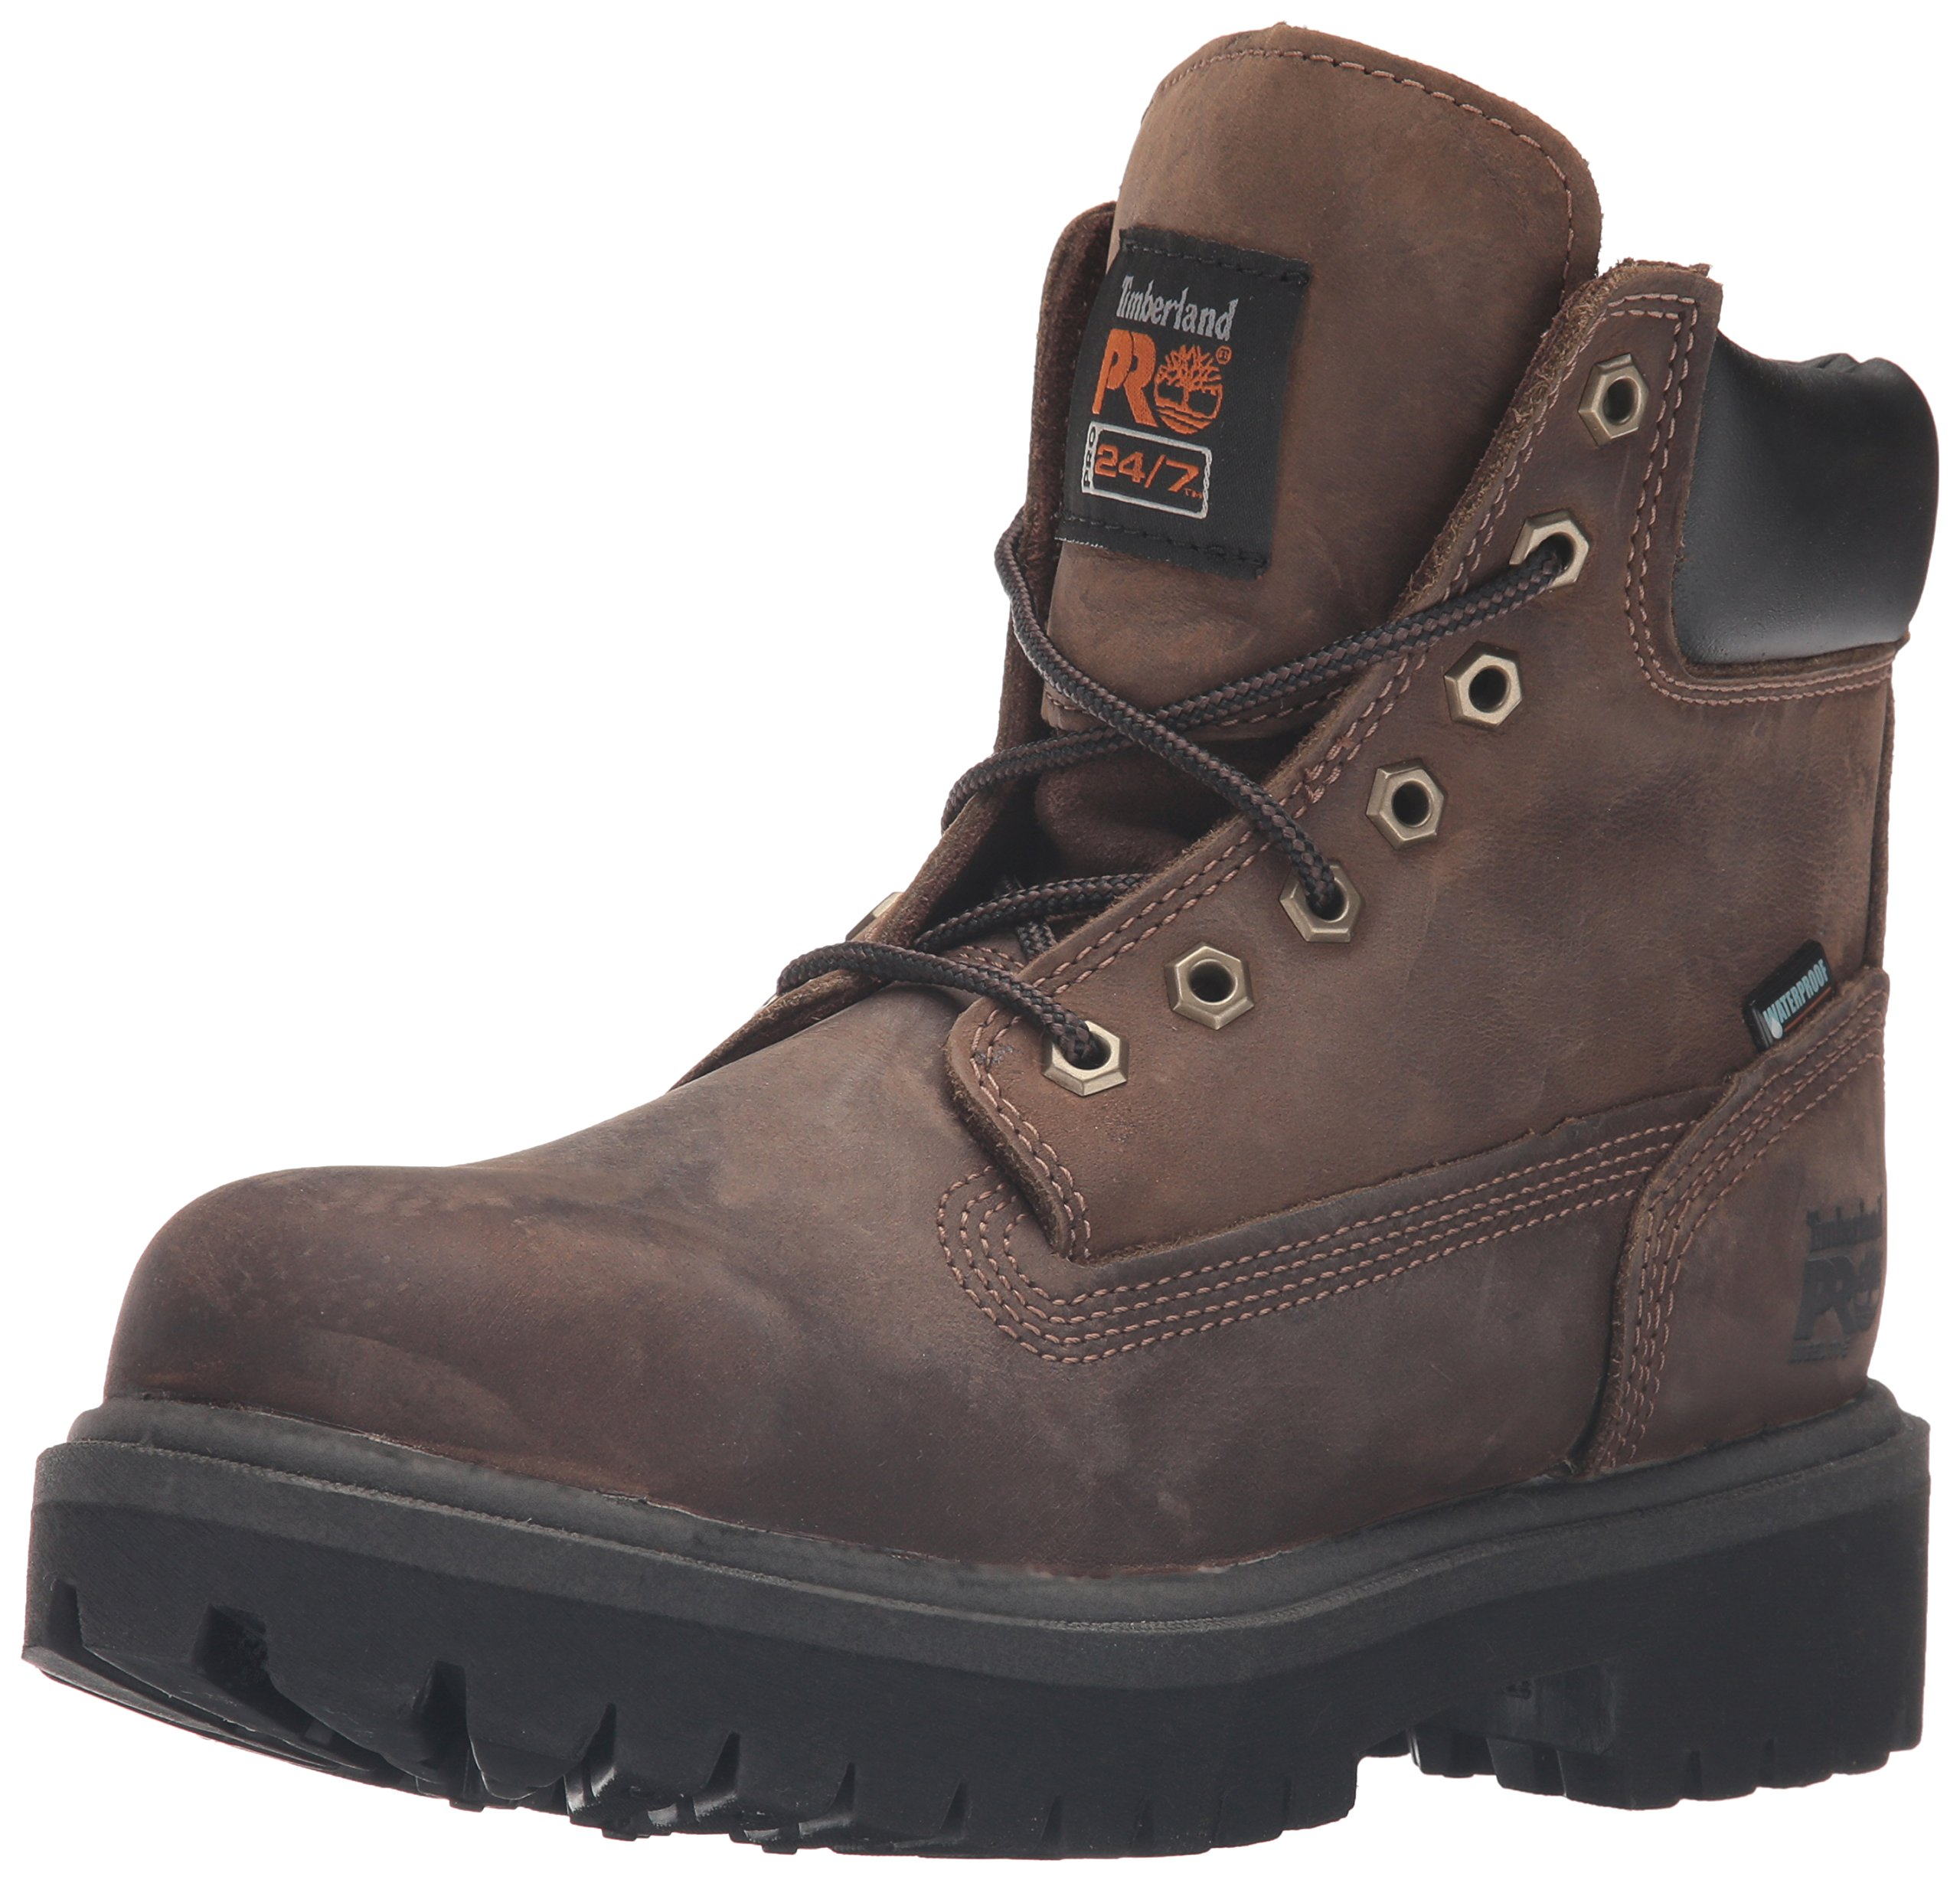 Timberland PRO Men's 38021 Direct Attach 6'' Steel-Toe Boot,Brown,11 M by Timberland PRO